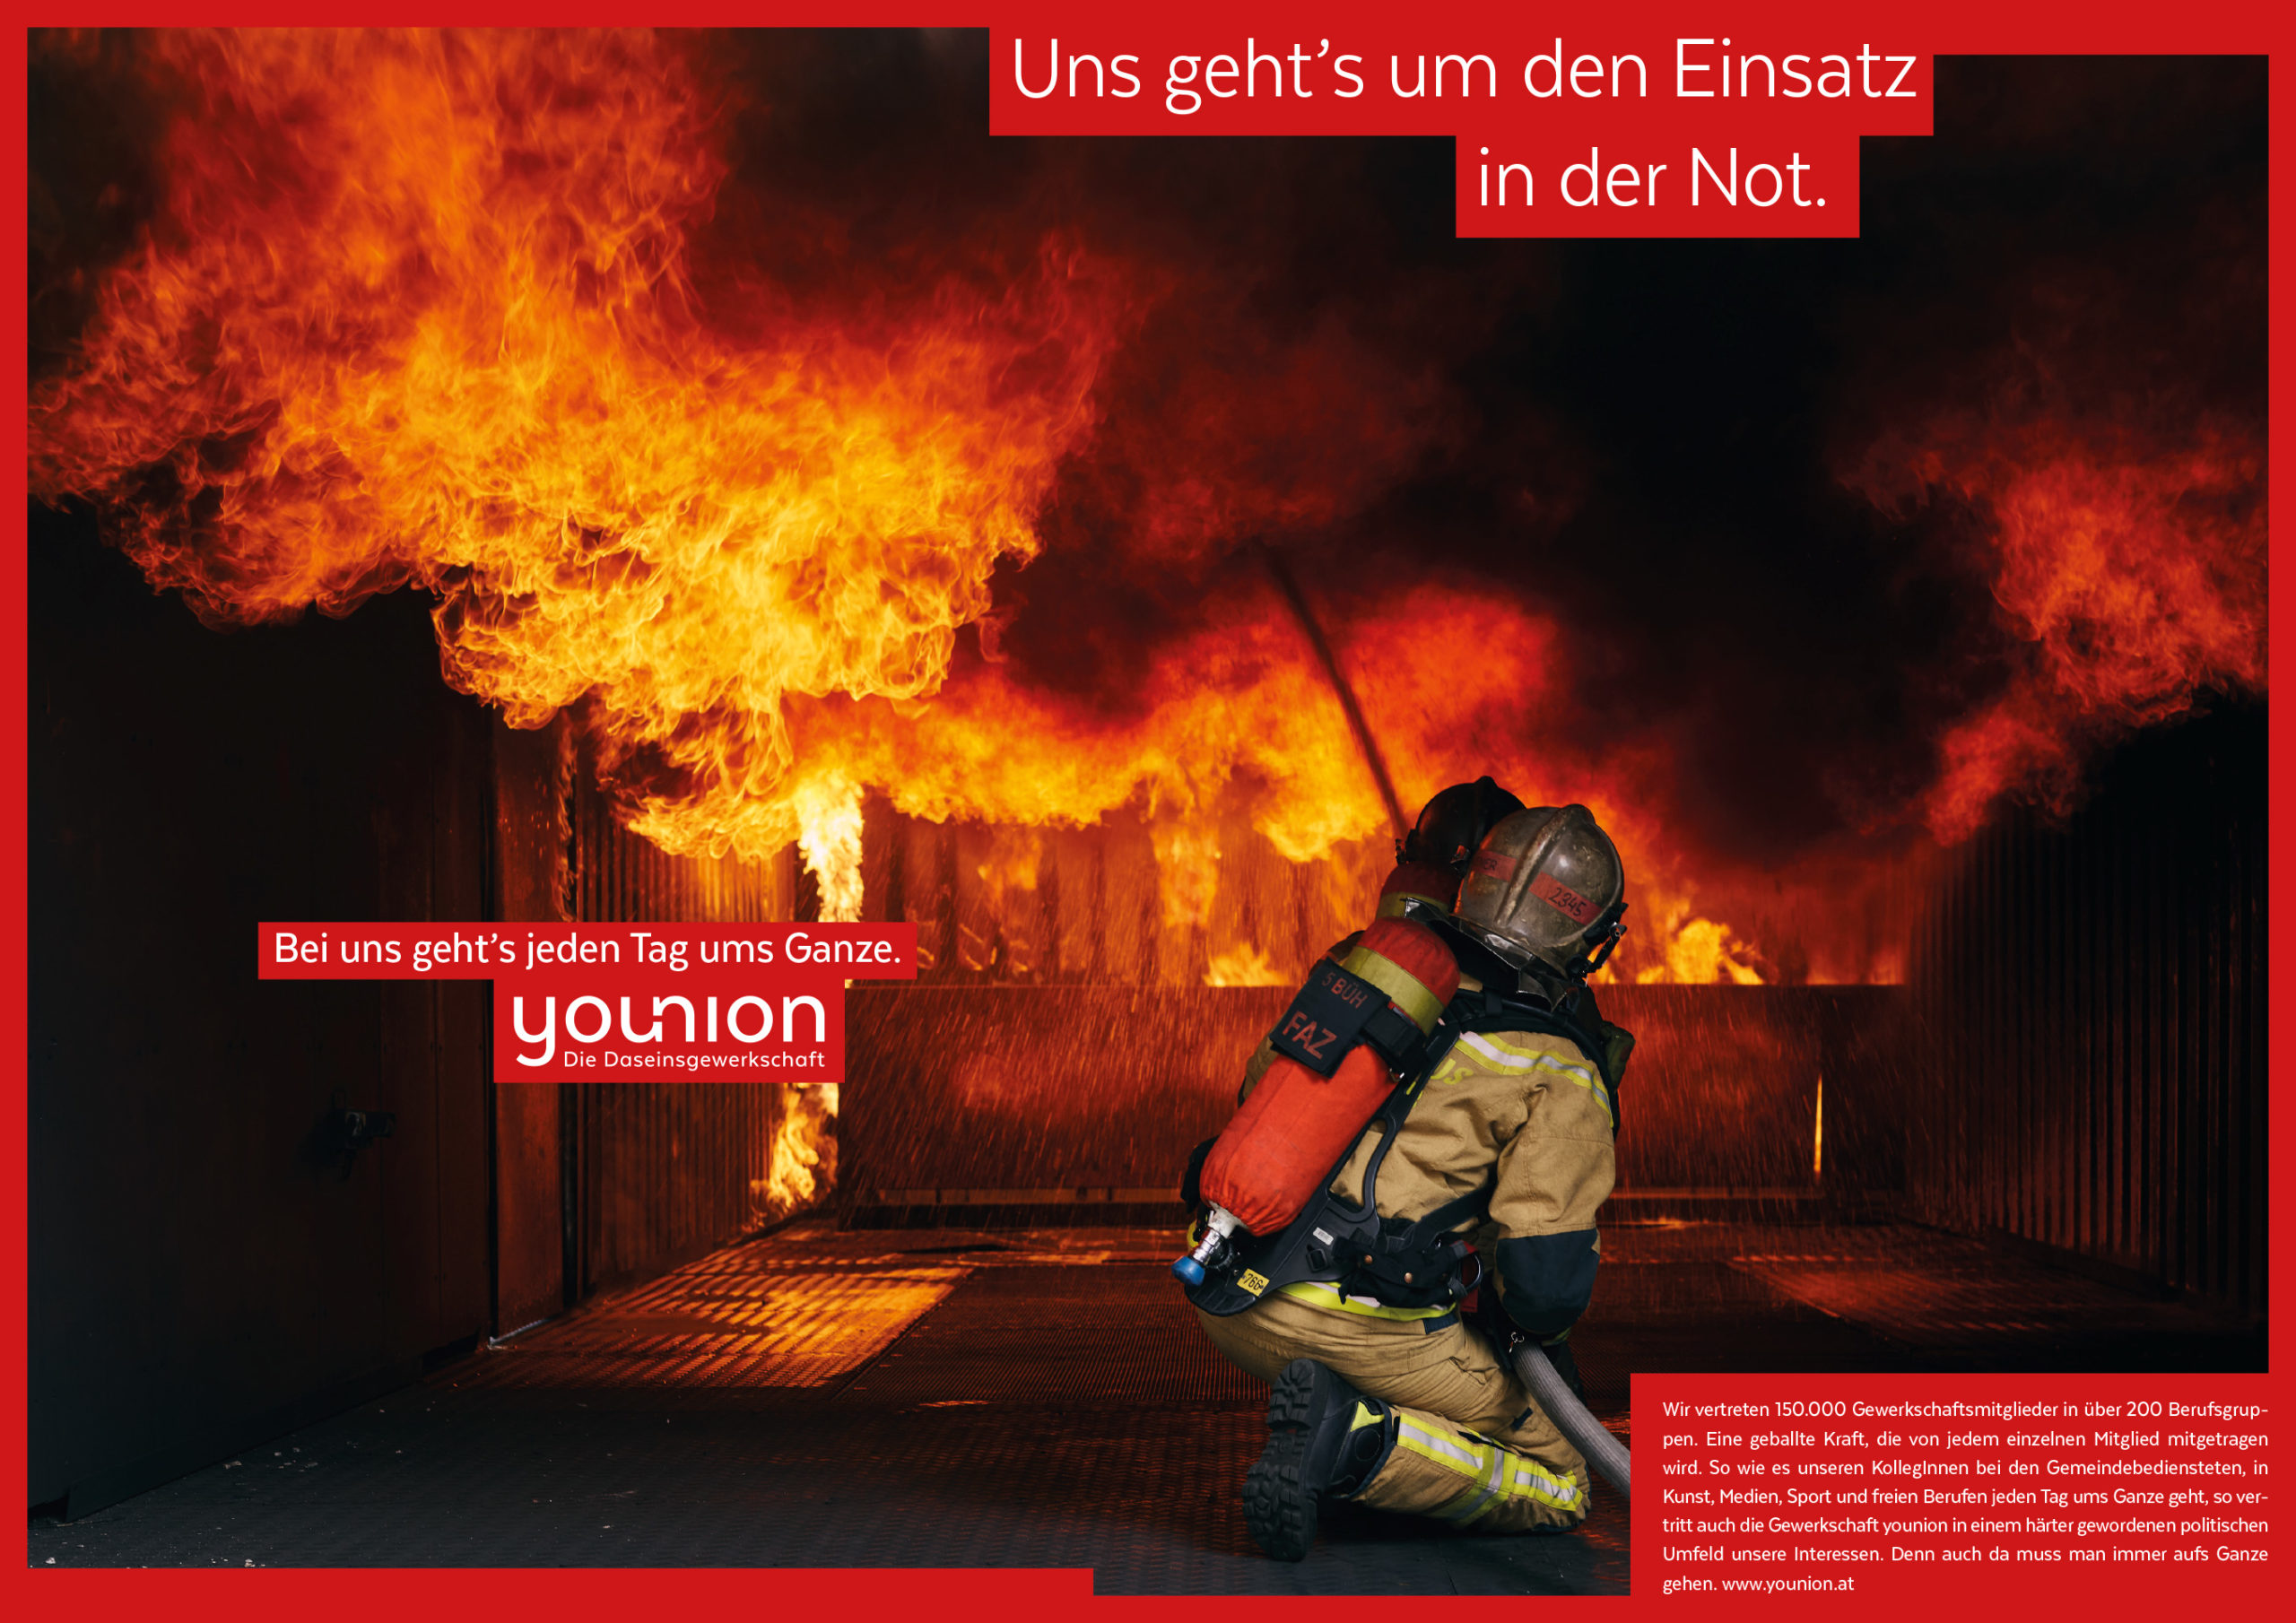 Younion-Kampagne-Sujet-2-scaled.jpg